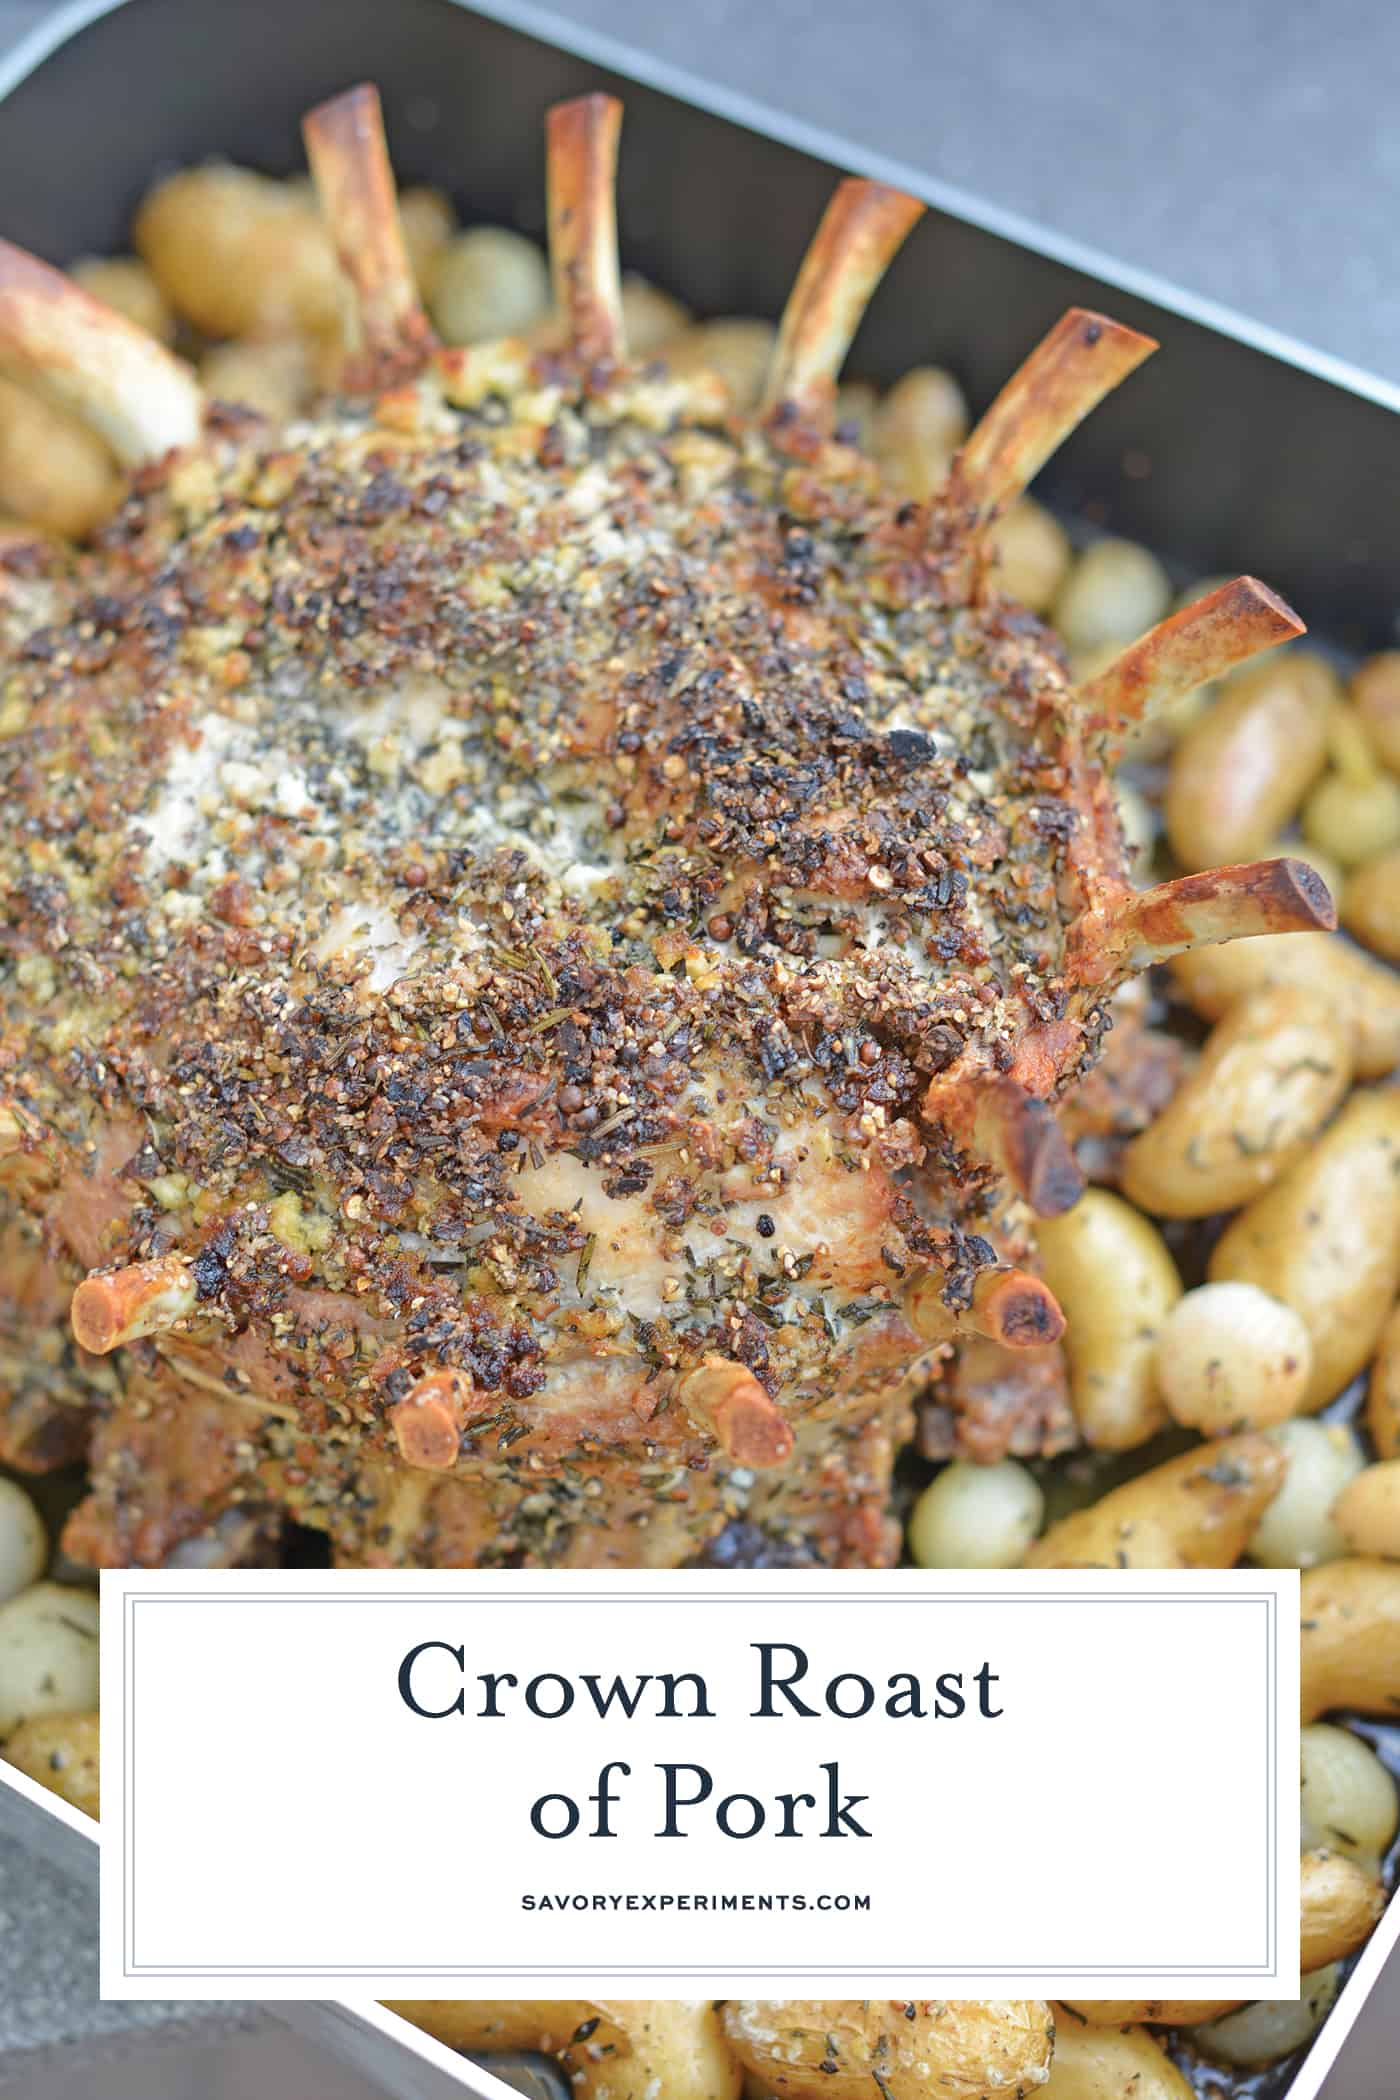 Crown Pork Roast is the perfect special occasion or holiday meal to serve for a crowd. Tasty and impressive presentation make this a winning pork recipe! #crownroastofpork #porkcrownroast www.savoryexperiments.com